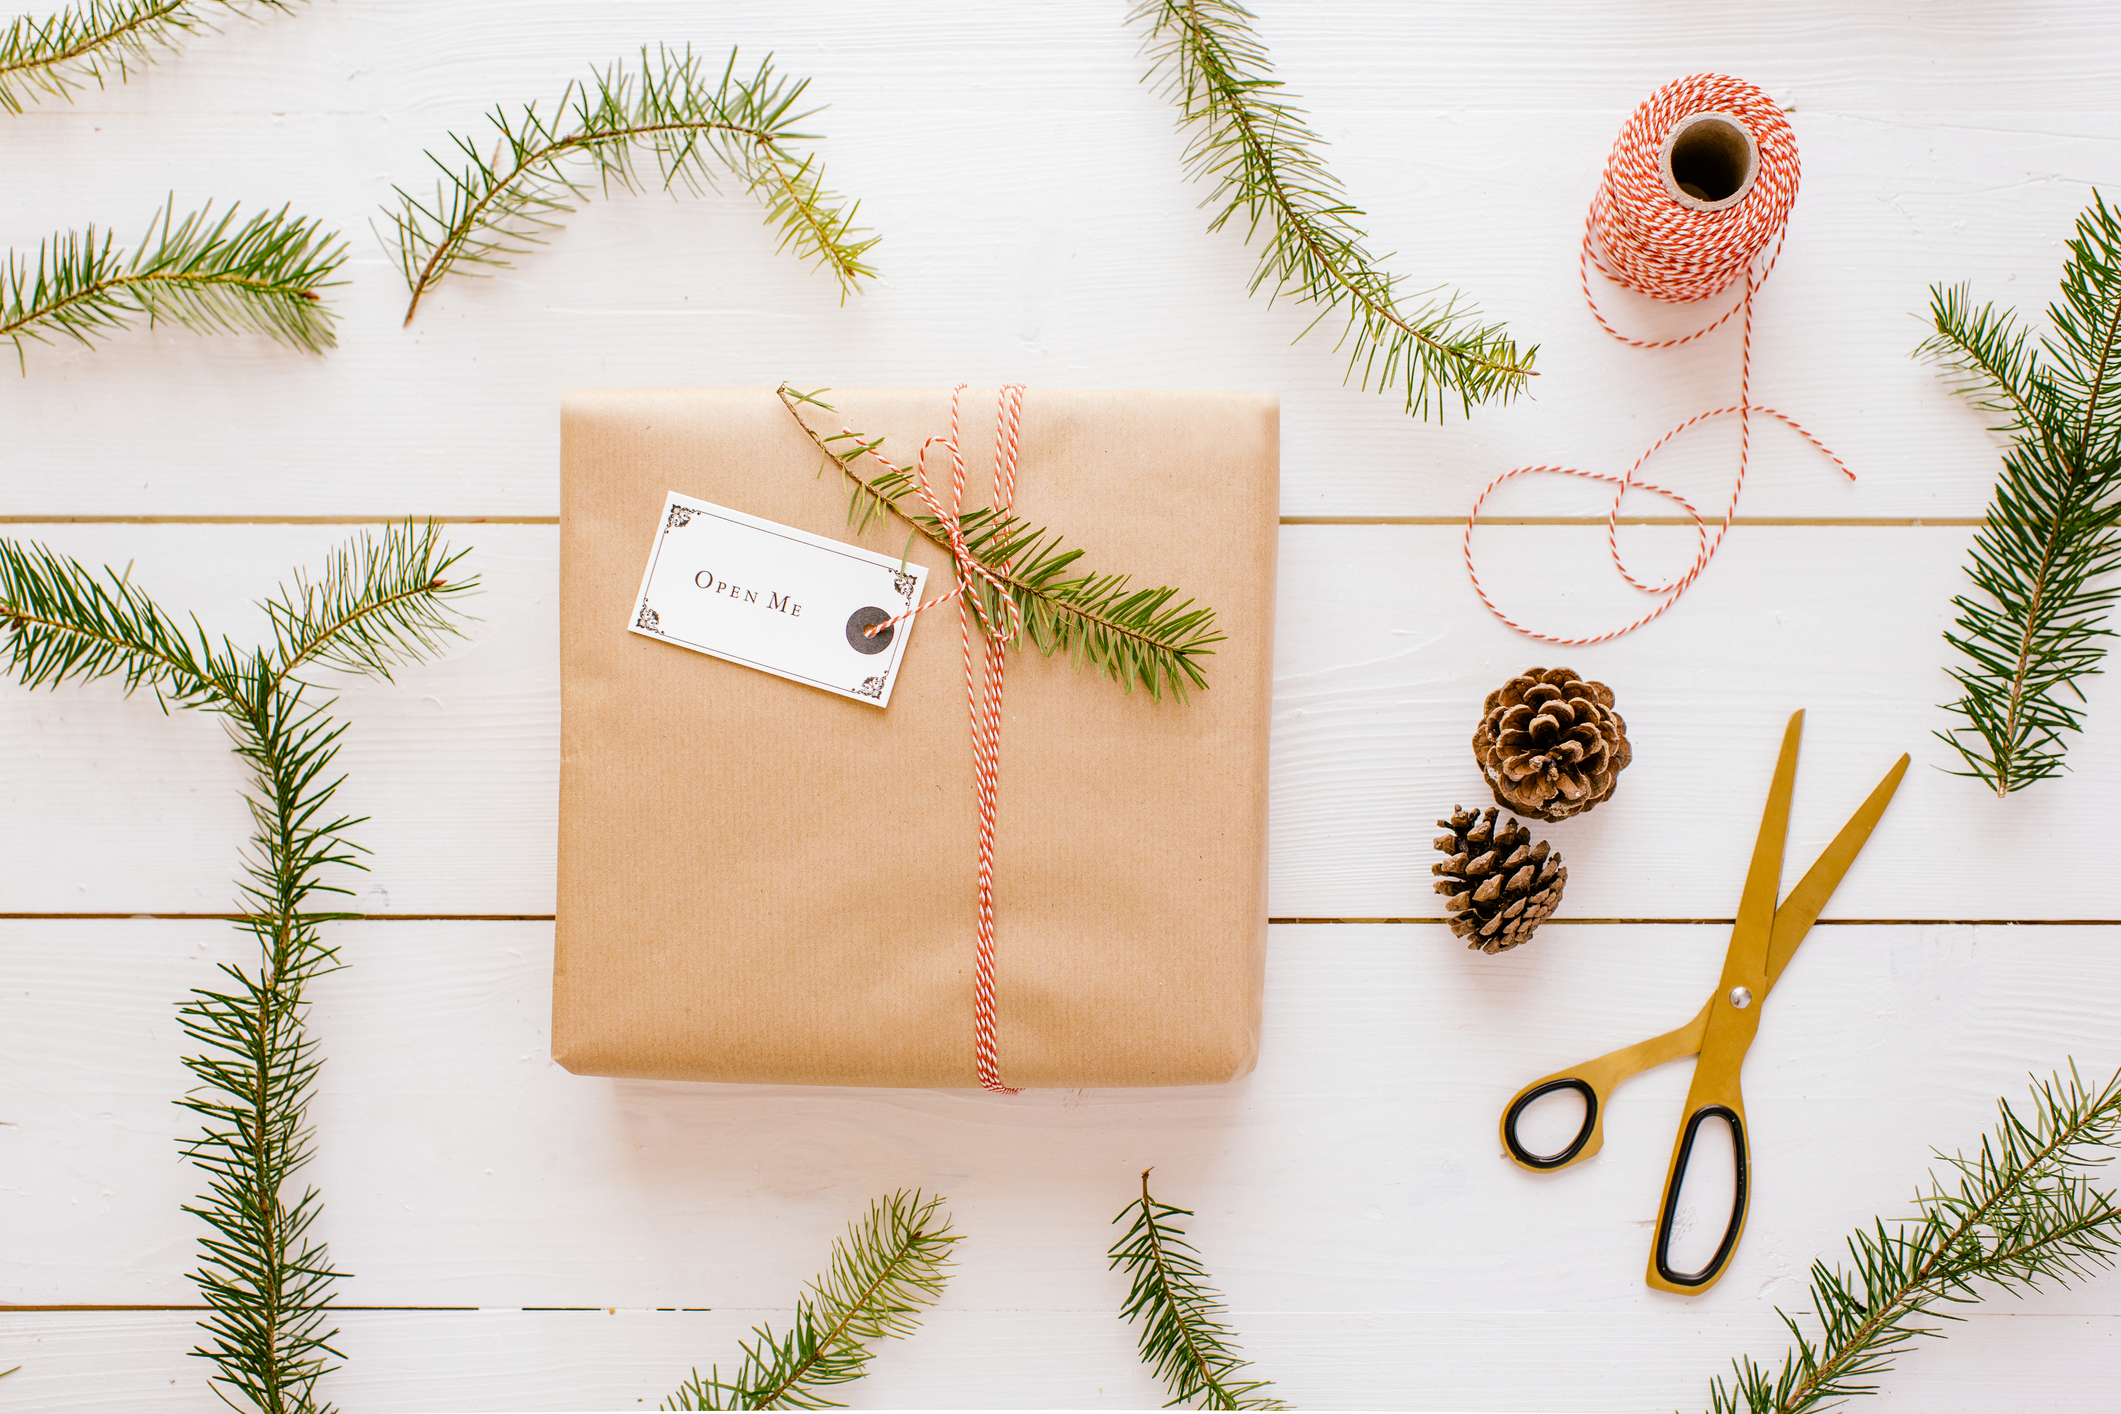 A Christmas gift wrapped in brown paper surrounded by pine.